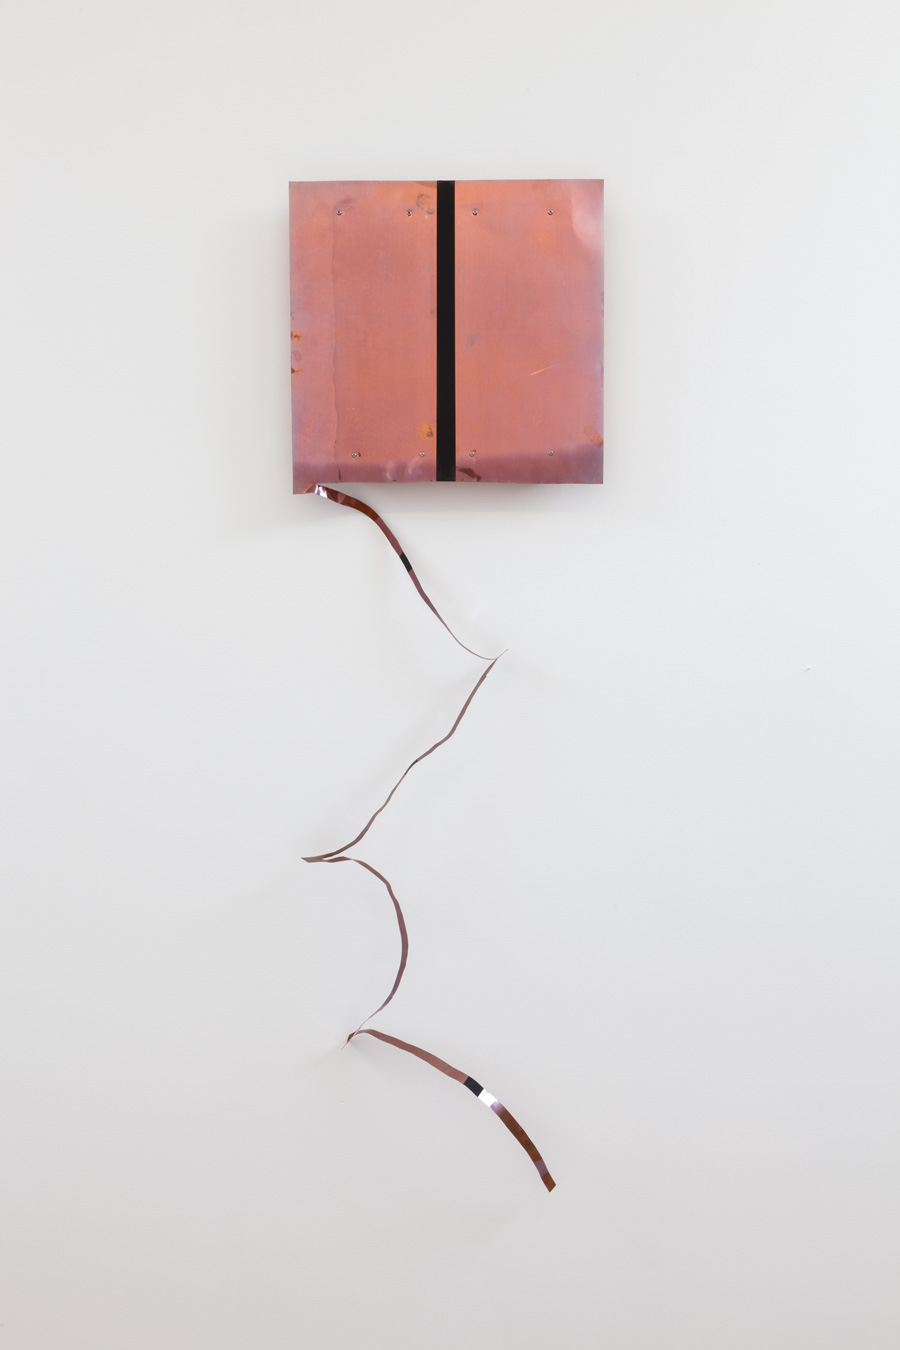 Resonating in Space , 1999 連空斜揺 ( Renkū Shayō ) Copper, acrylic 14 3/8 x 49 1/4 x 2 inches  36.5 x 125 x 5 cm